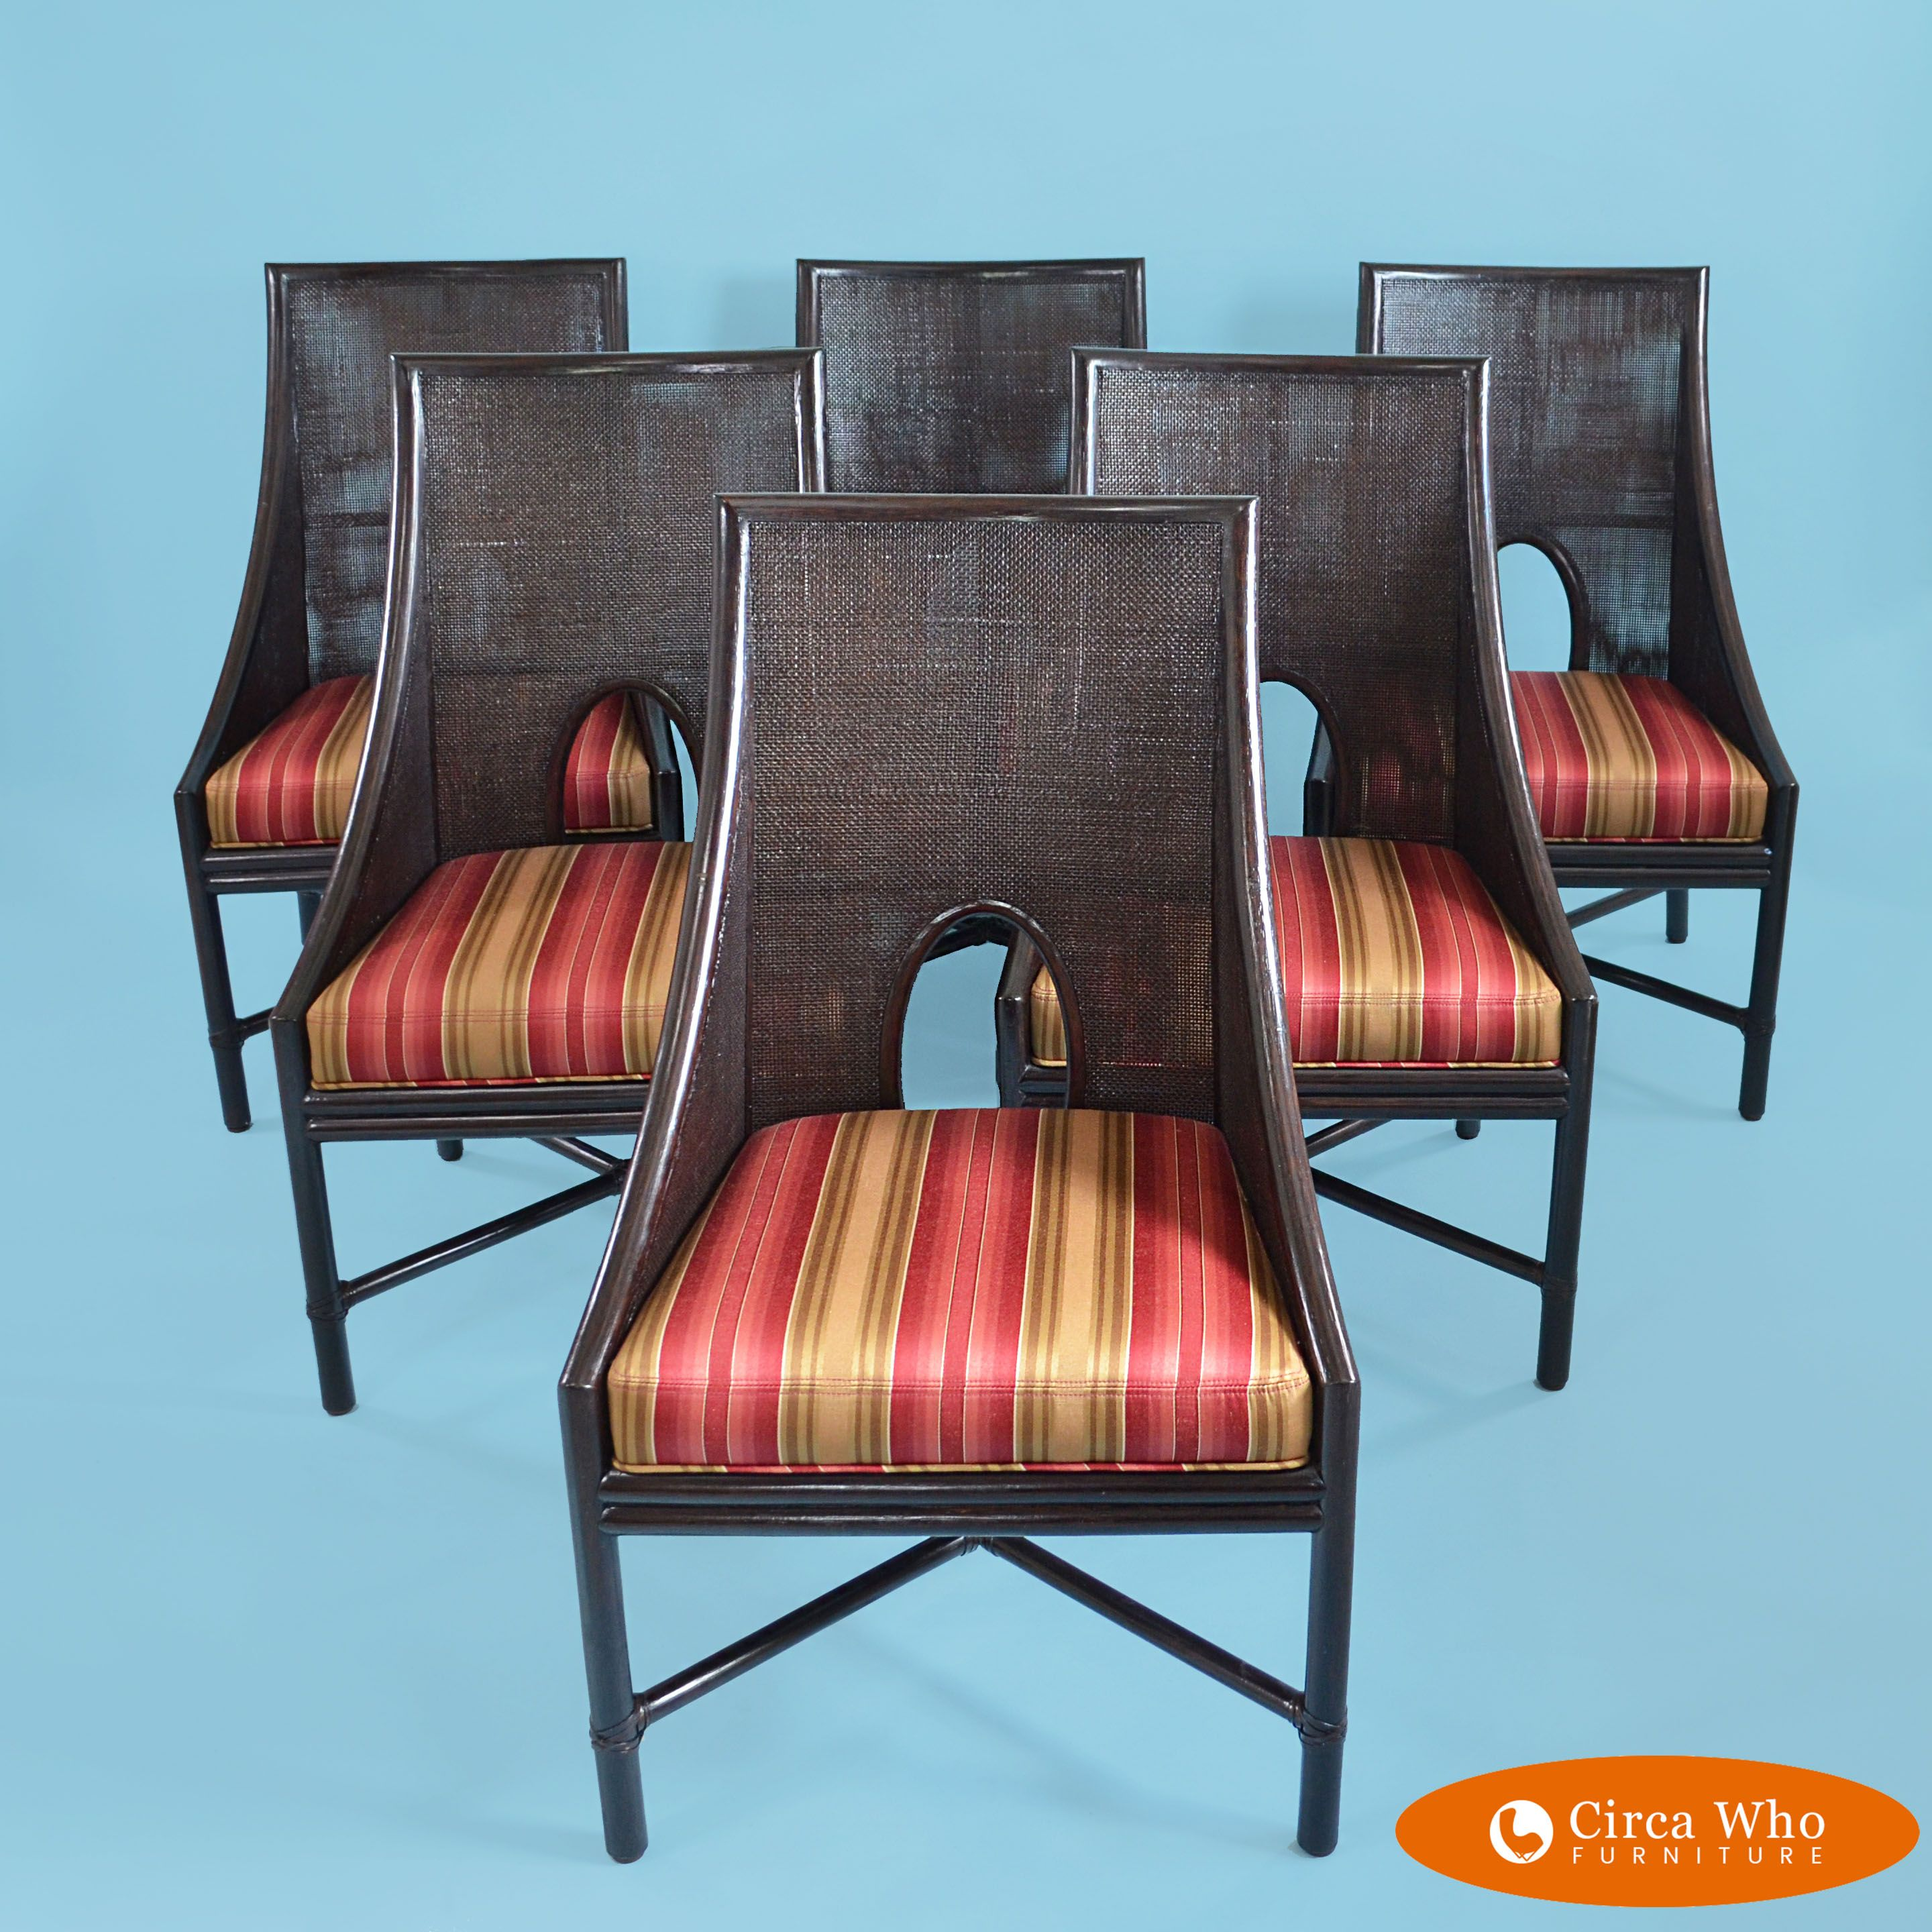 Set Of 6 Caned Chairs By Mcguire Circa Who Chair Rattan Bar Stools Chippendale Chairs